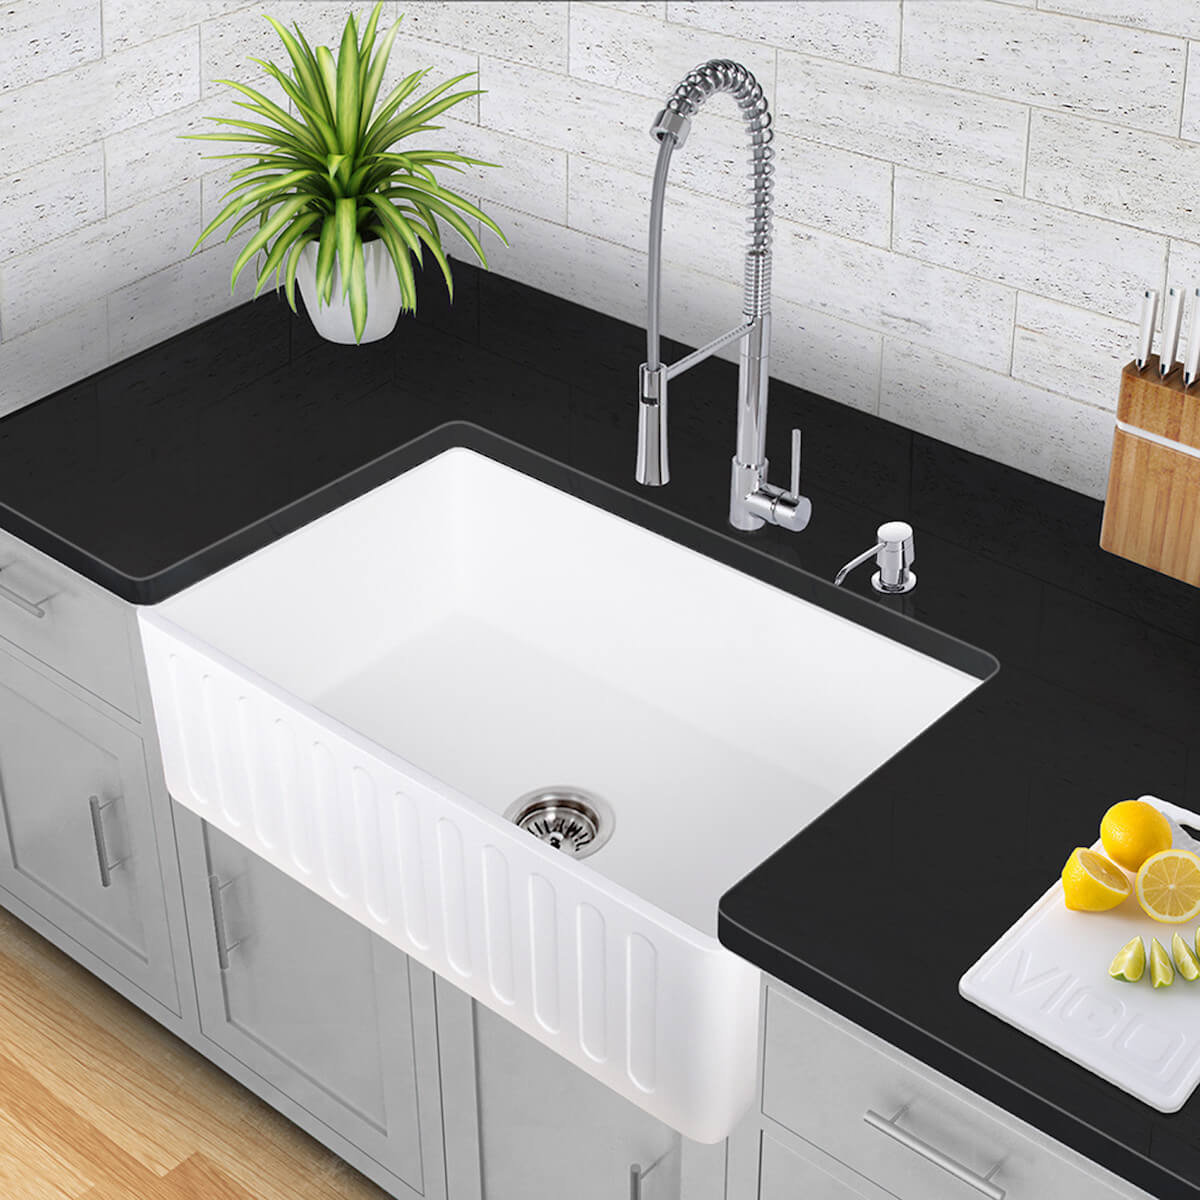 Lovely Farmhouse Sink